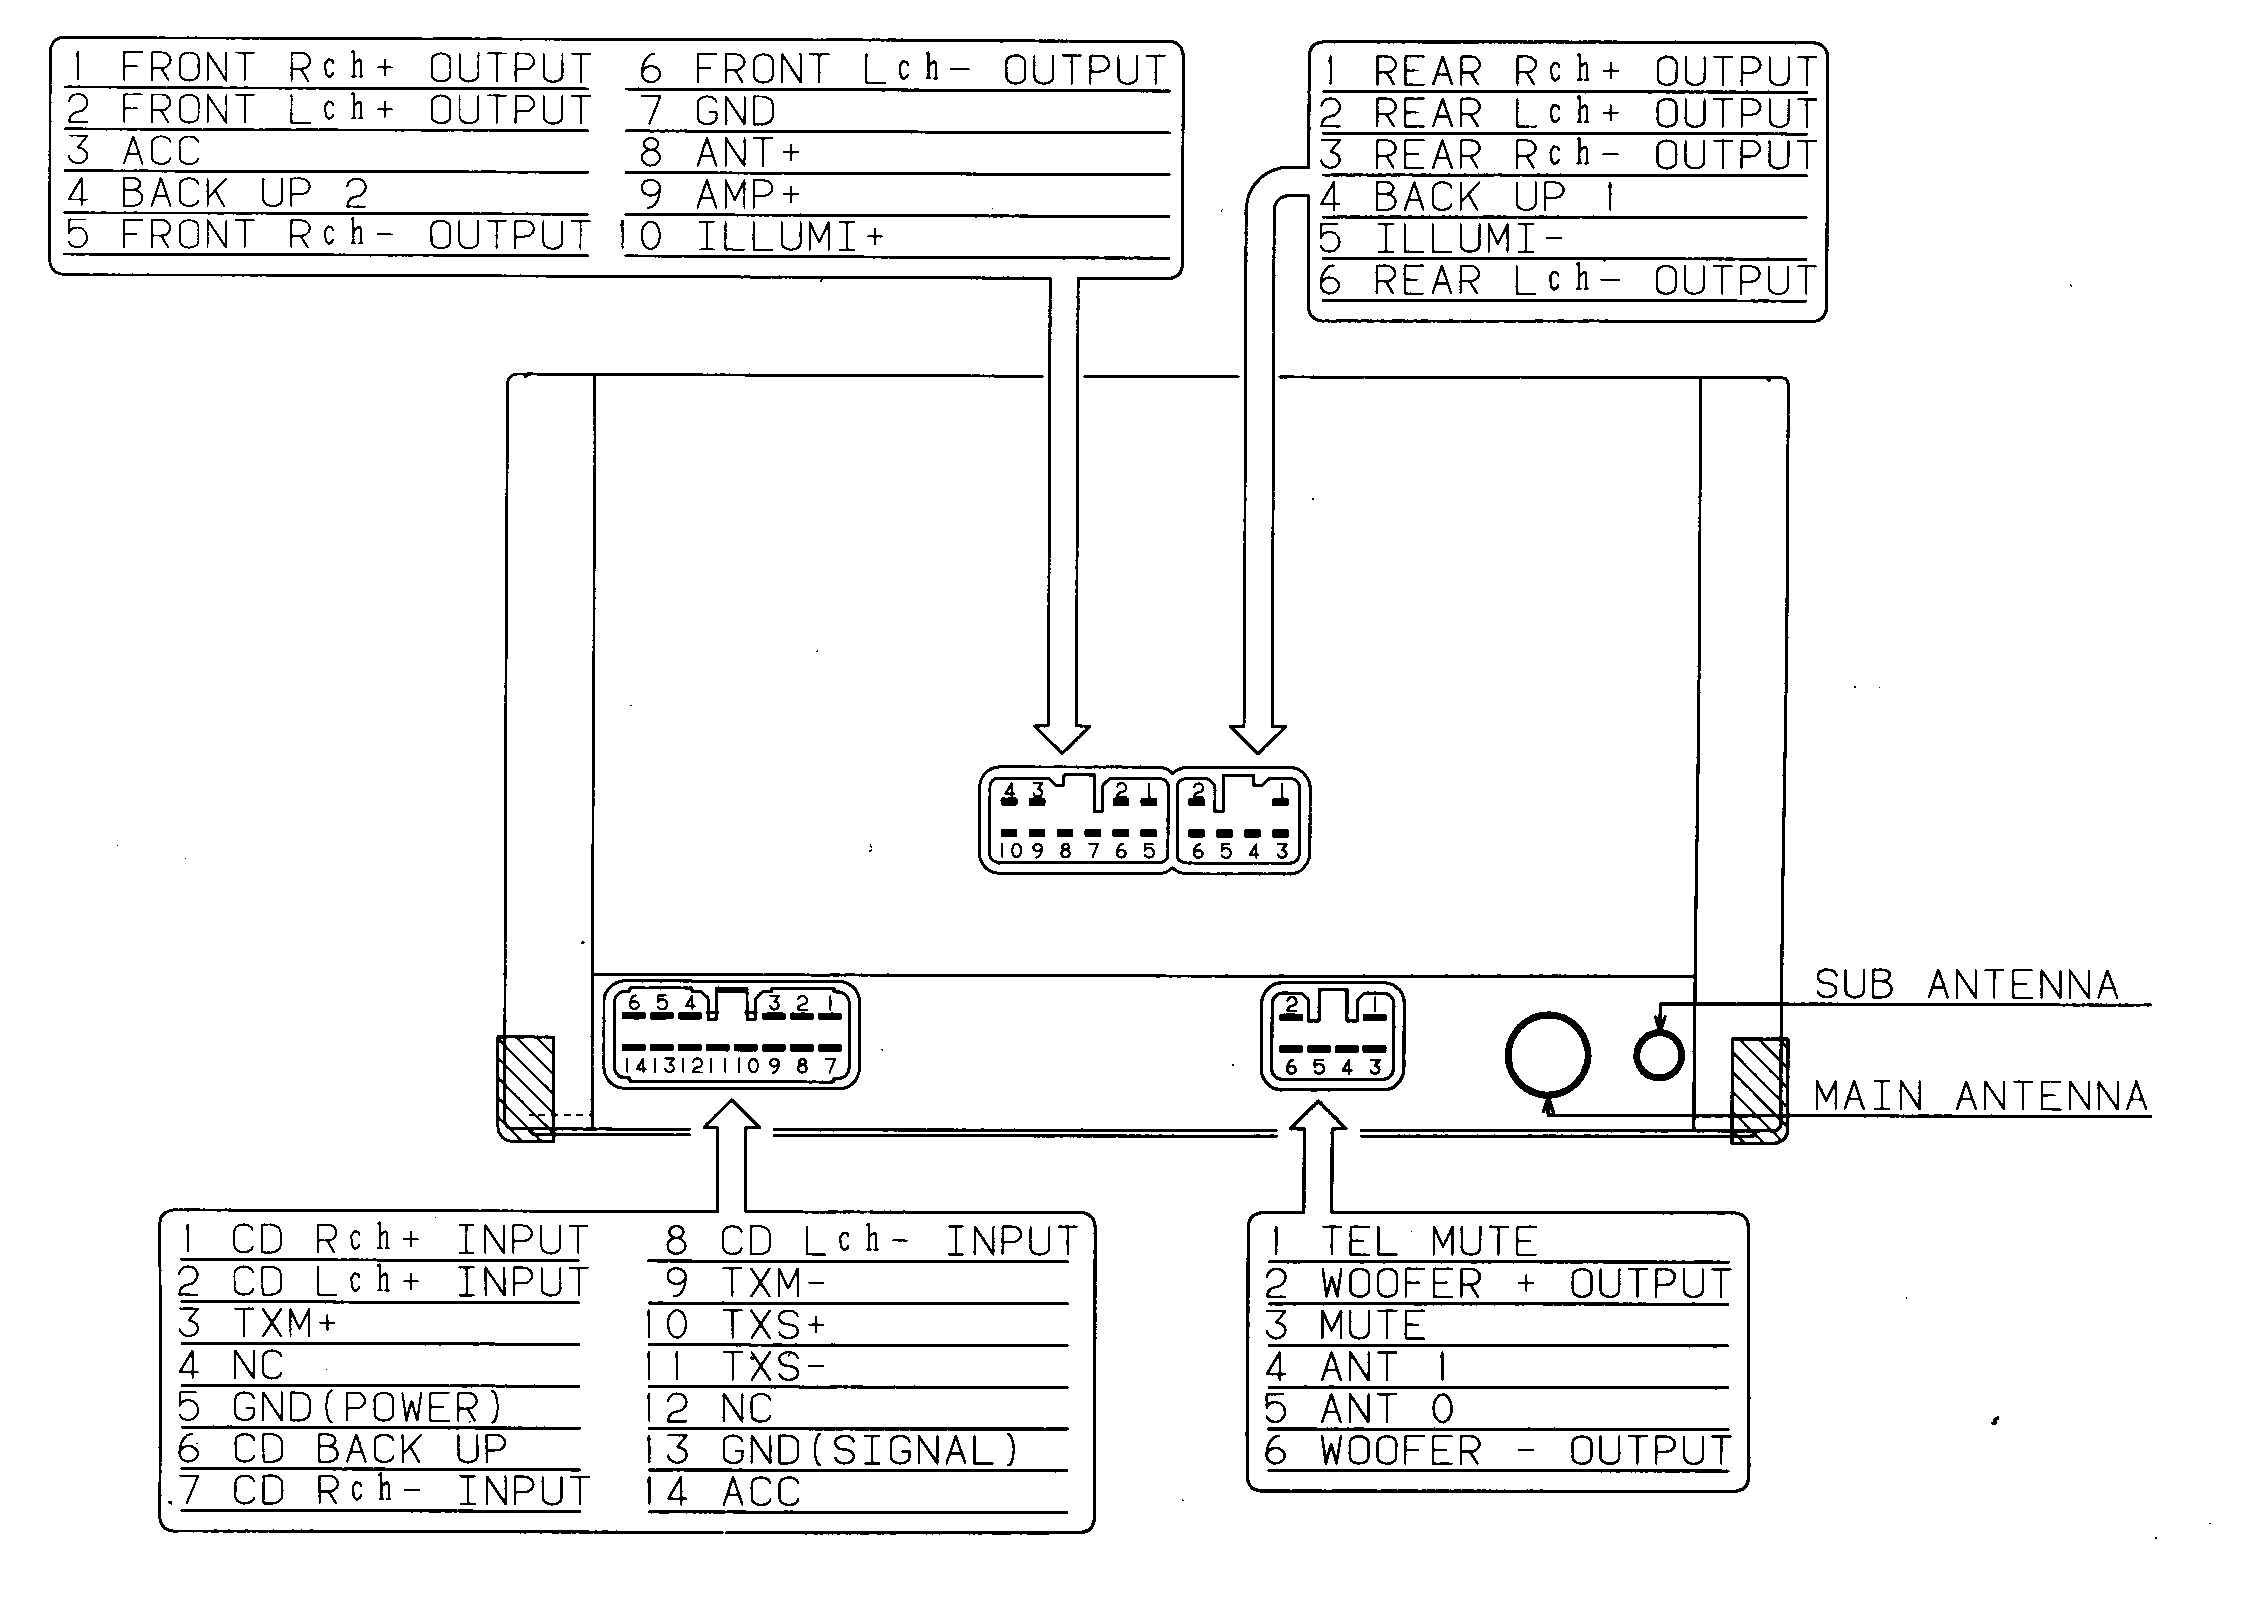 Lexus car stereo wiring diagram harness pinout connector wire lexus rx330 radio wiring diagram lexus rx330 parts diagram  at crackthecode.co